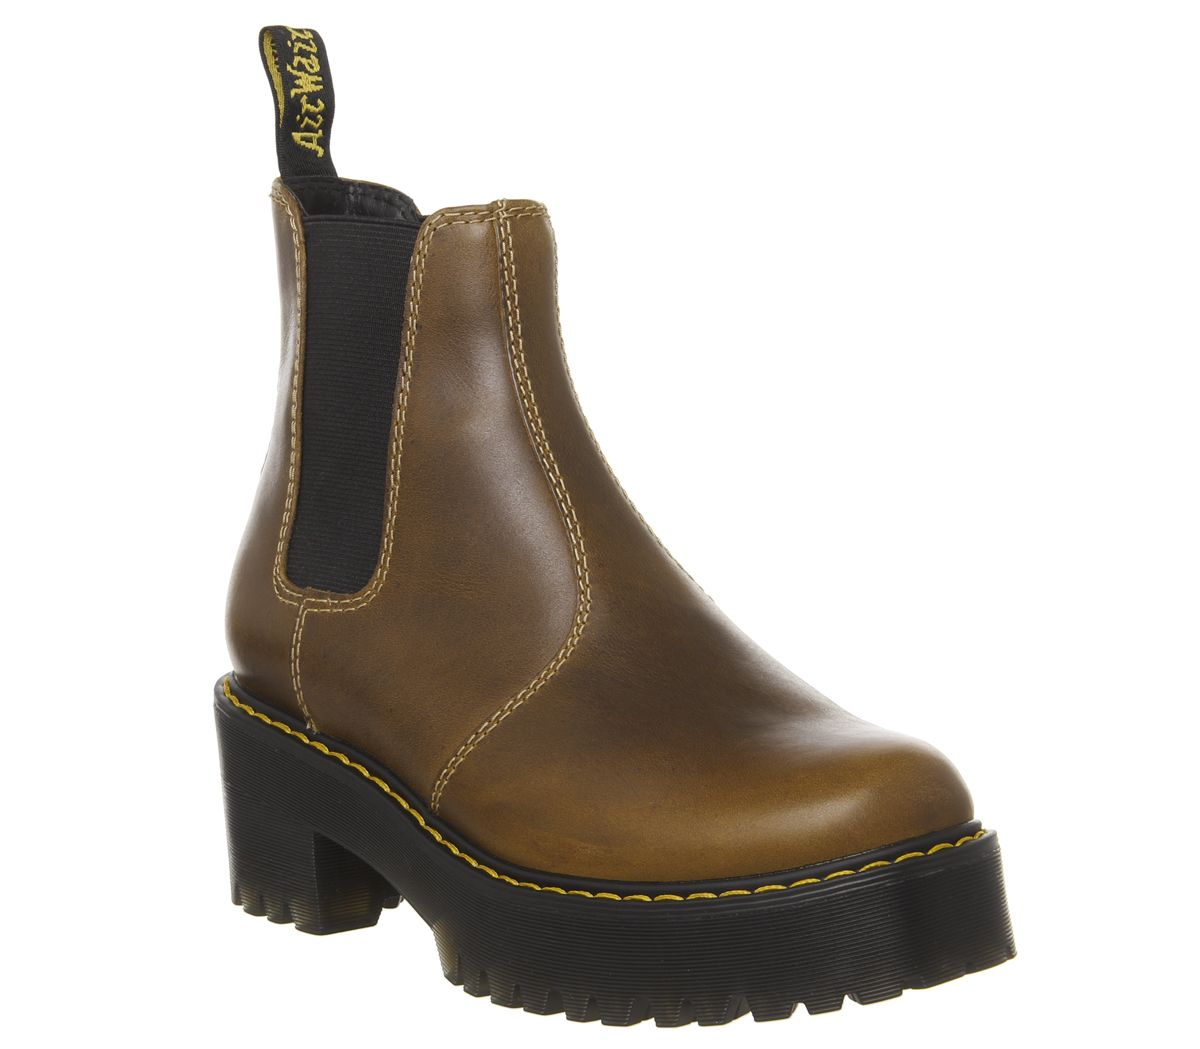 62805936811 Sentinel Womens Dr. Martens Rometty Chelsea Boots Butterscotch Orleans Boots